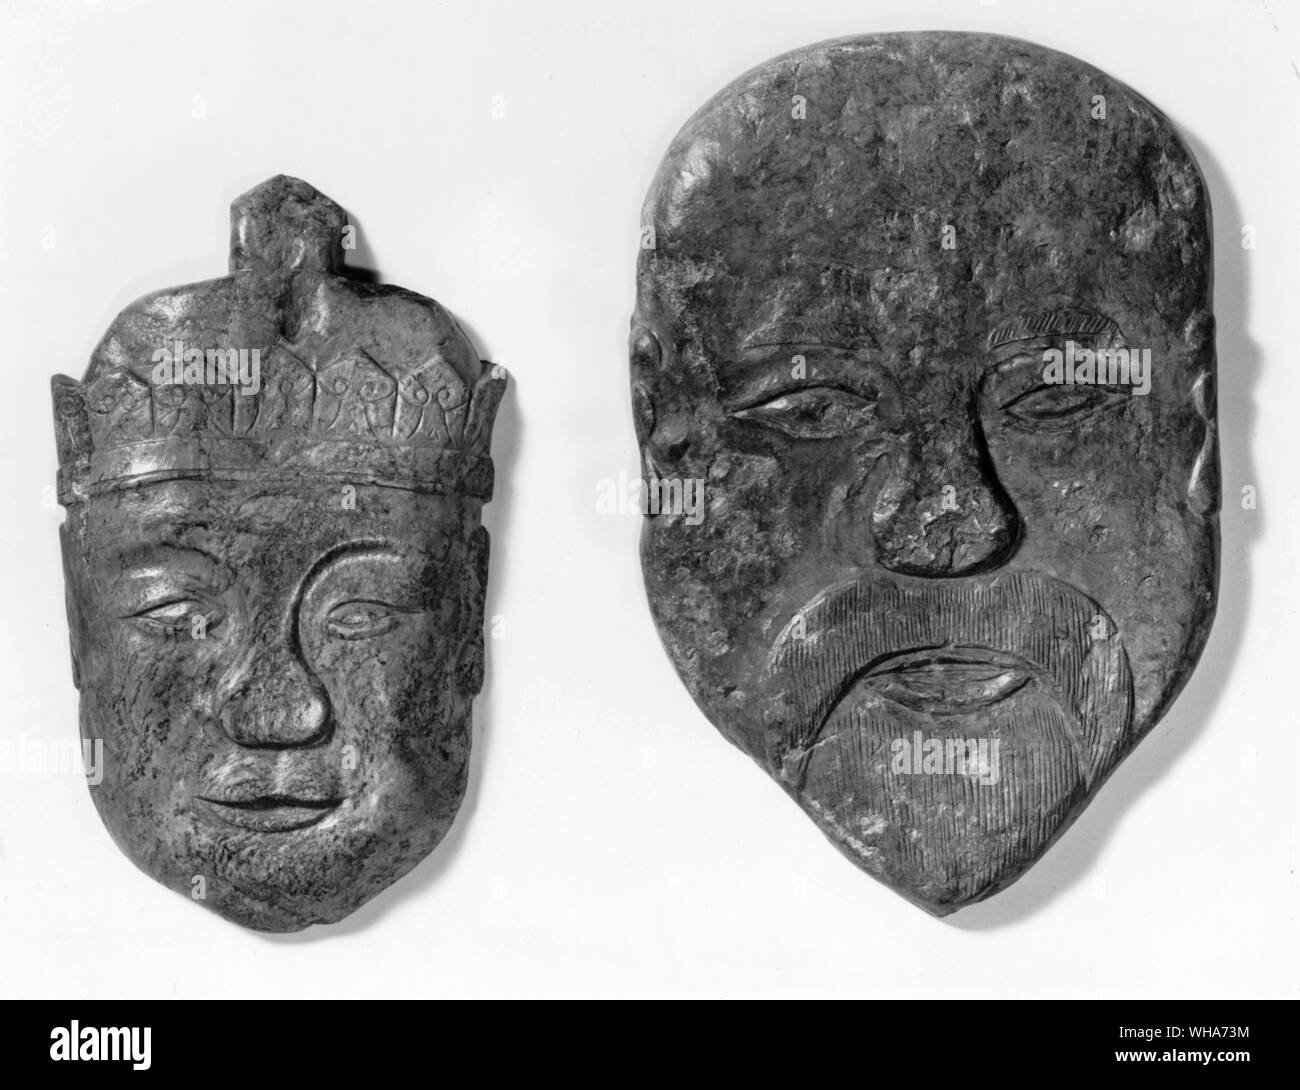 Two jade carvings of human heads possibly used as temple offerings Han Dynasty 200AD. replicas / survivals of human sacrifice Stock Photo